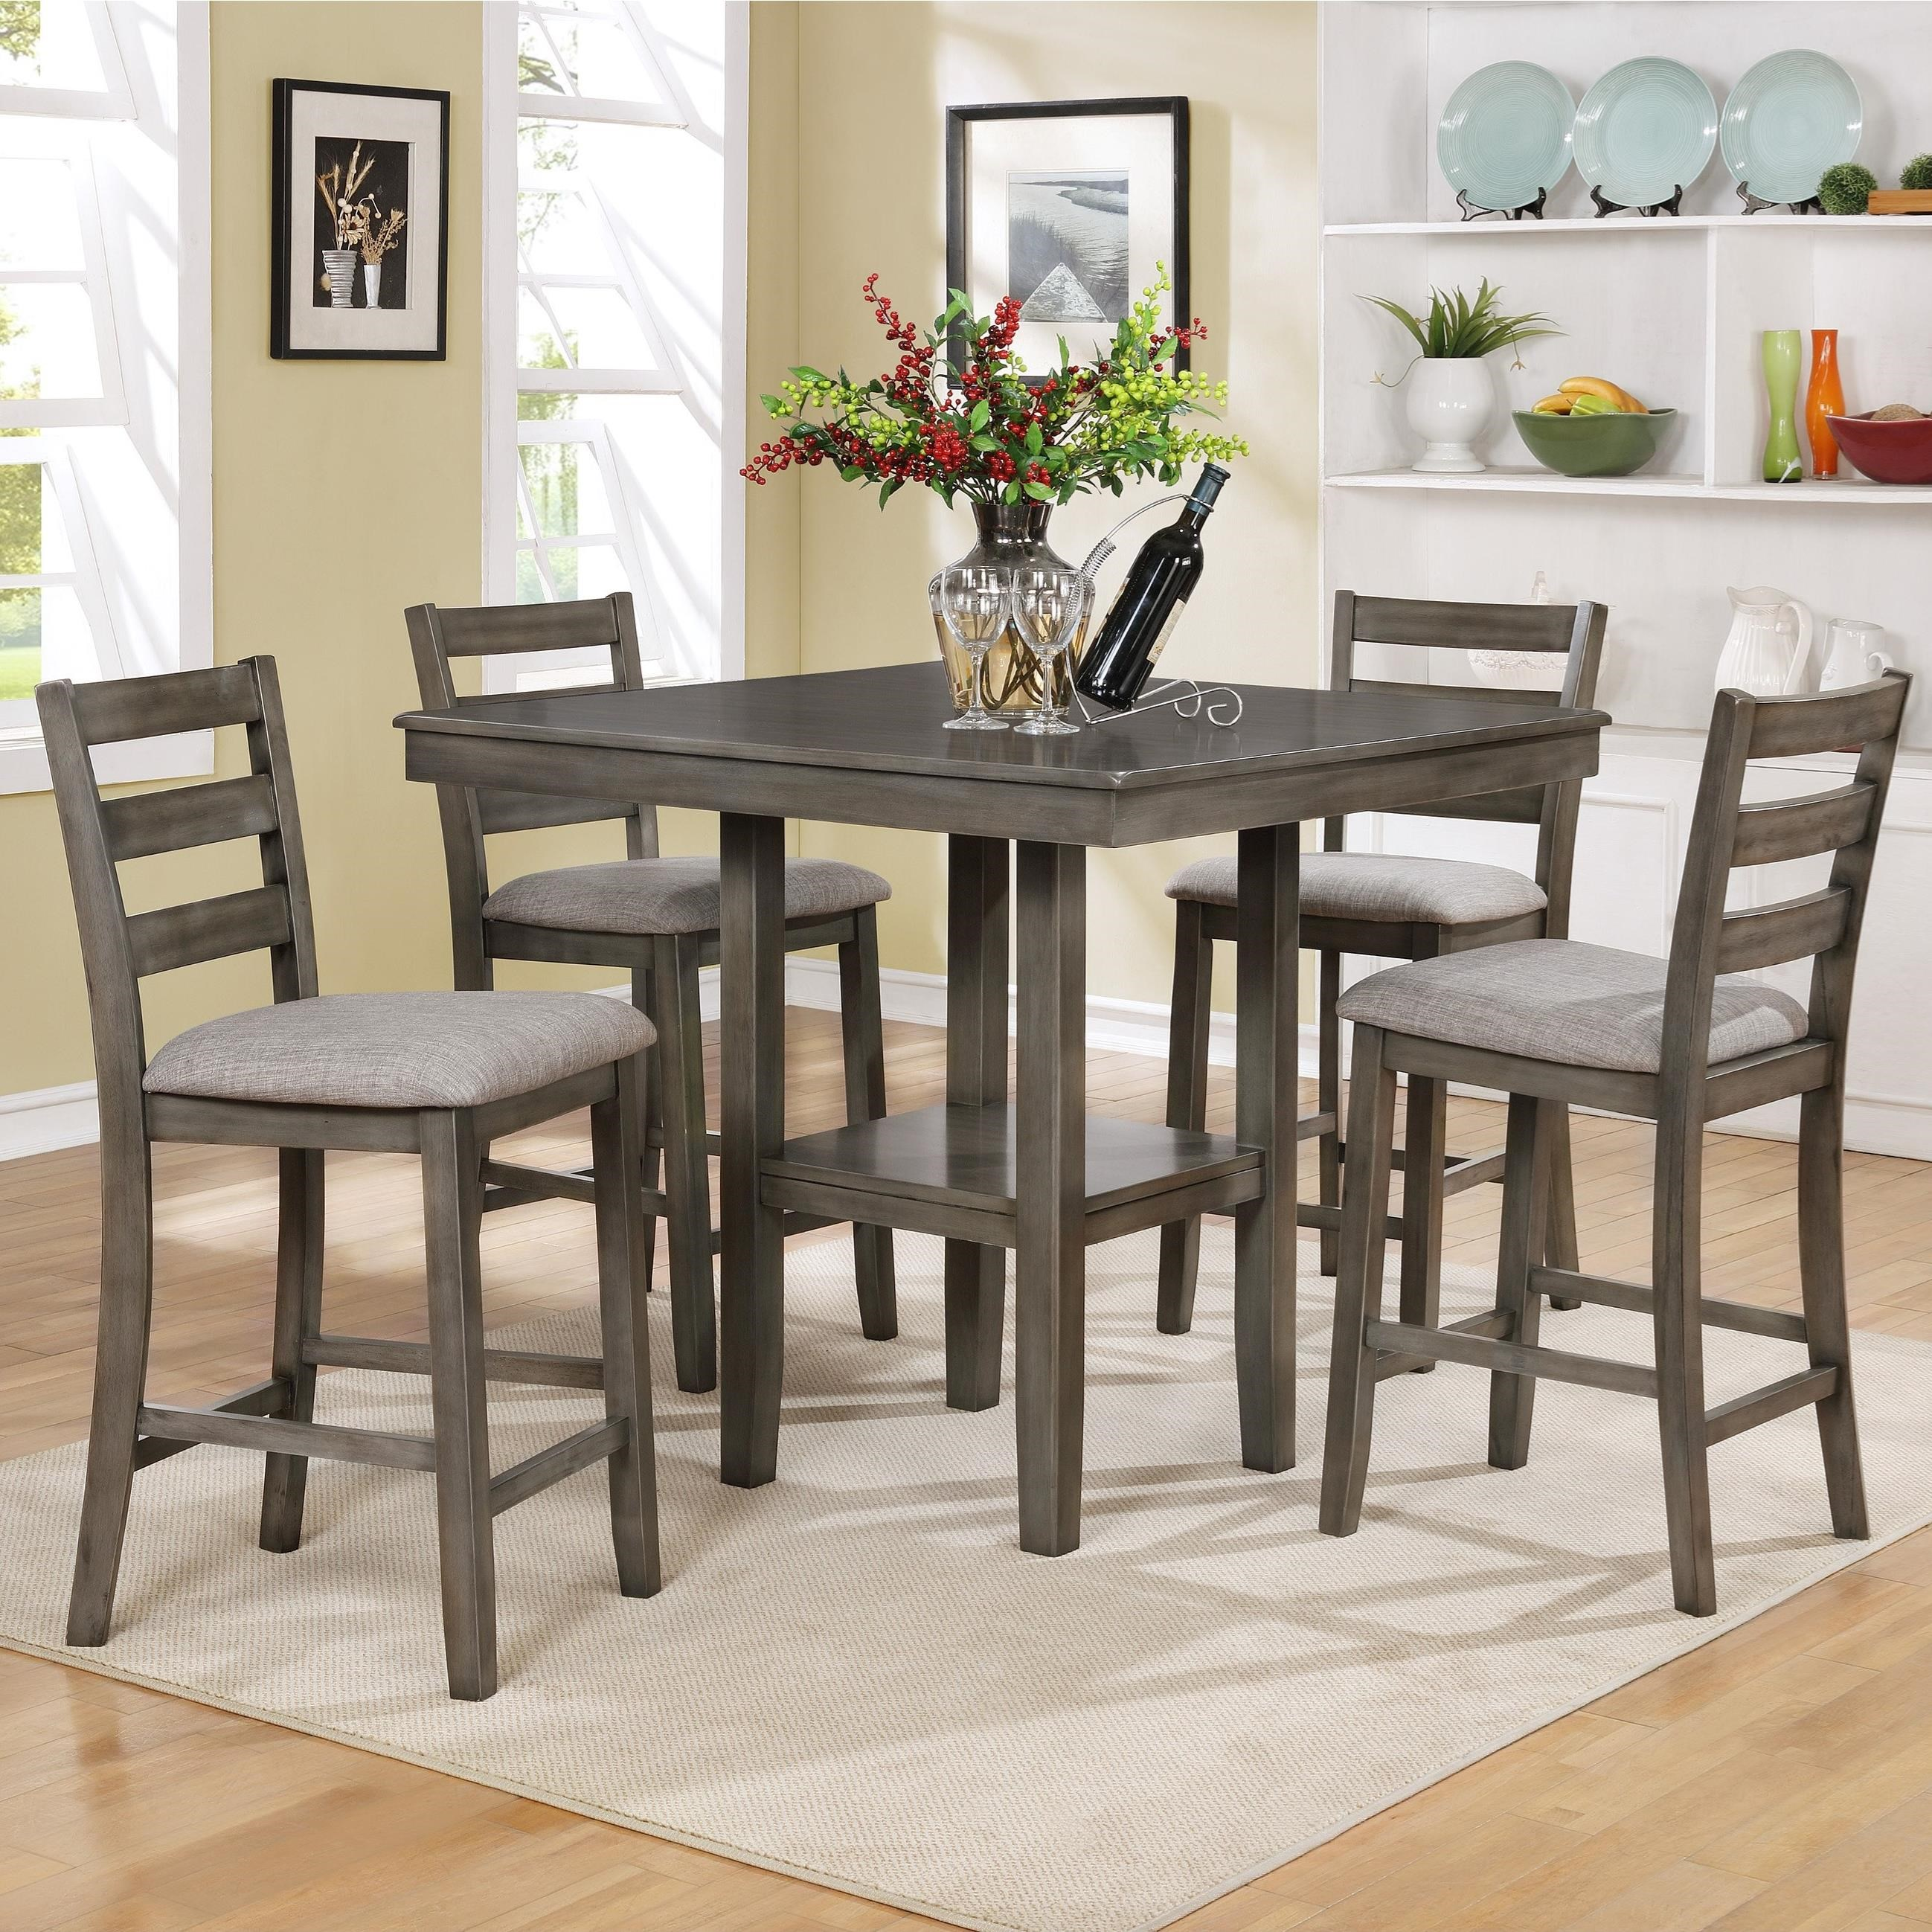 Crown Mark Tahoe 5 Piece Counter Height Table and Chairs Set - Item Number: 2630SET-GY